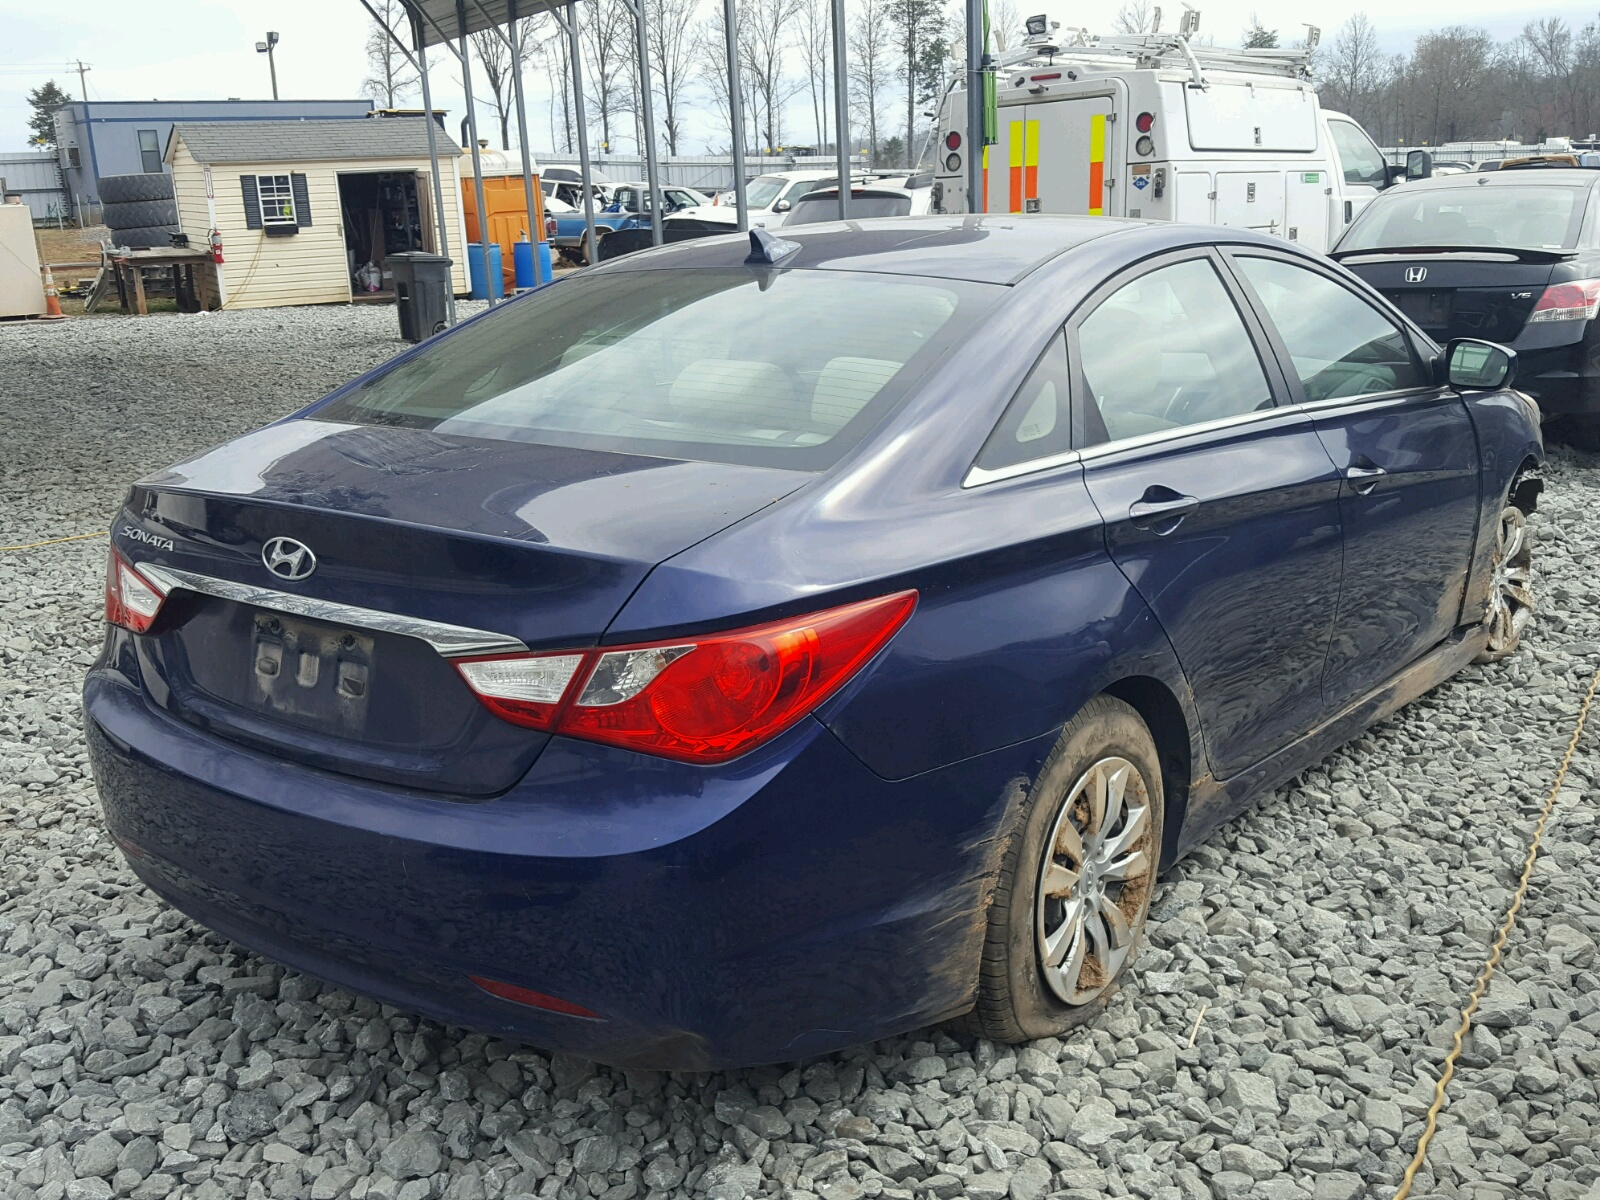 carfinder auctions salvage on sale en of gl title copart greer cert sc auto hyundai accent lot in online black